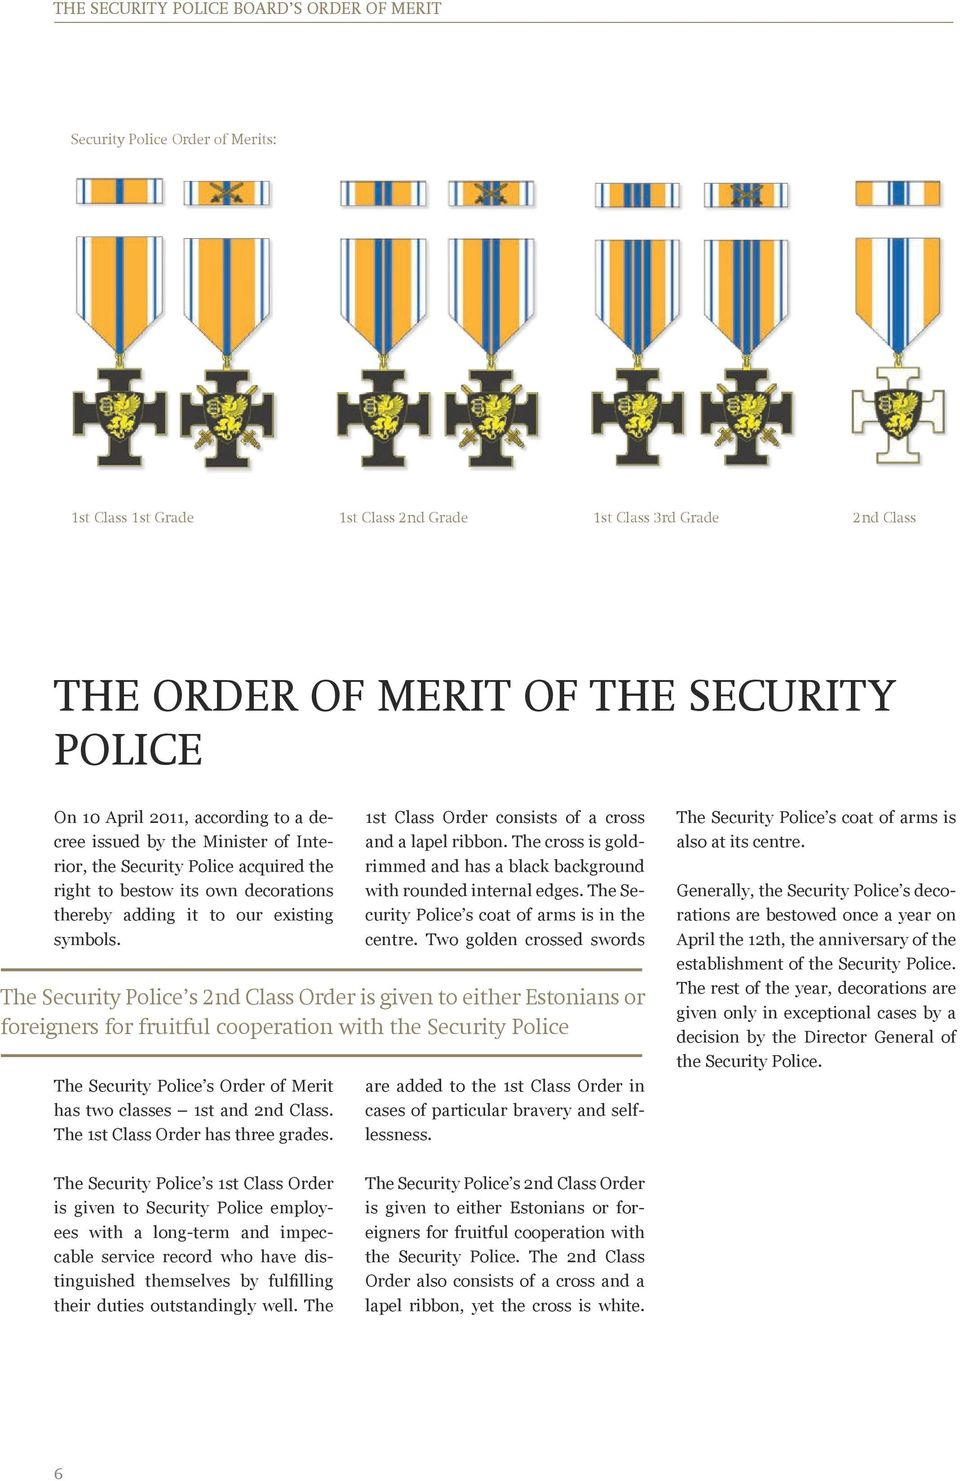 The Security Police s Order of Merit has two classes 1st and 2nd Class. The 1st Class Order has three grades. 1st Class Order consists of a cross and a lapel ribbon.